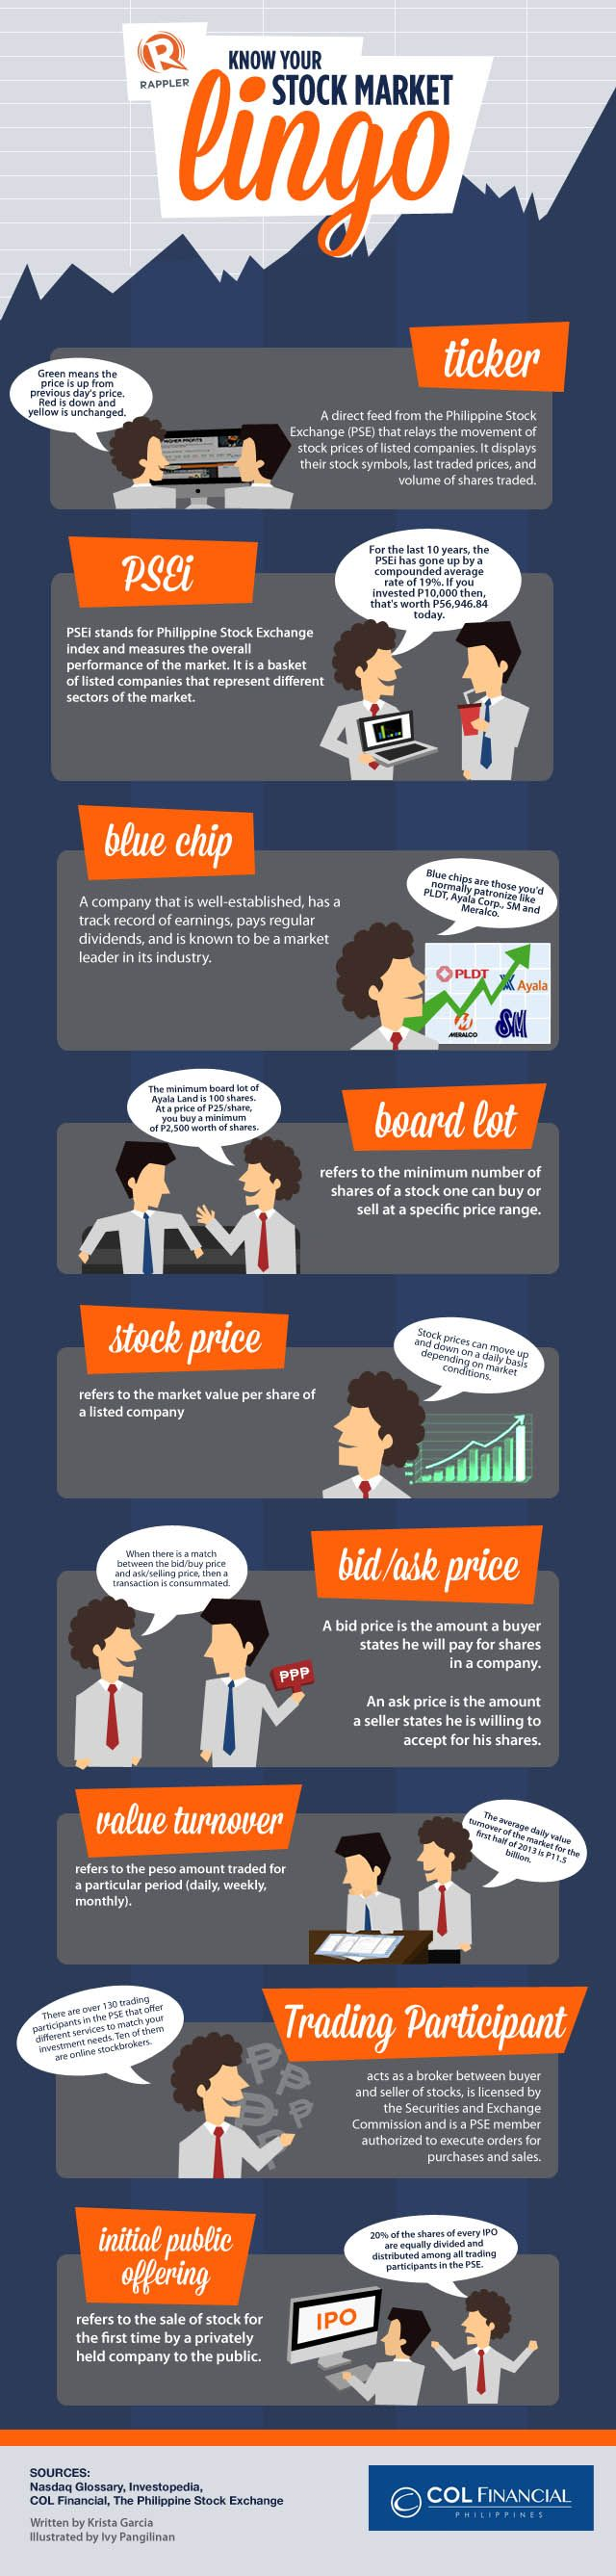 Know your stock market lingo